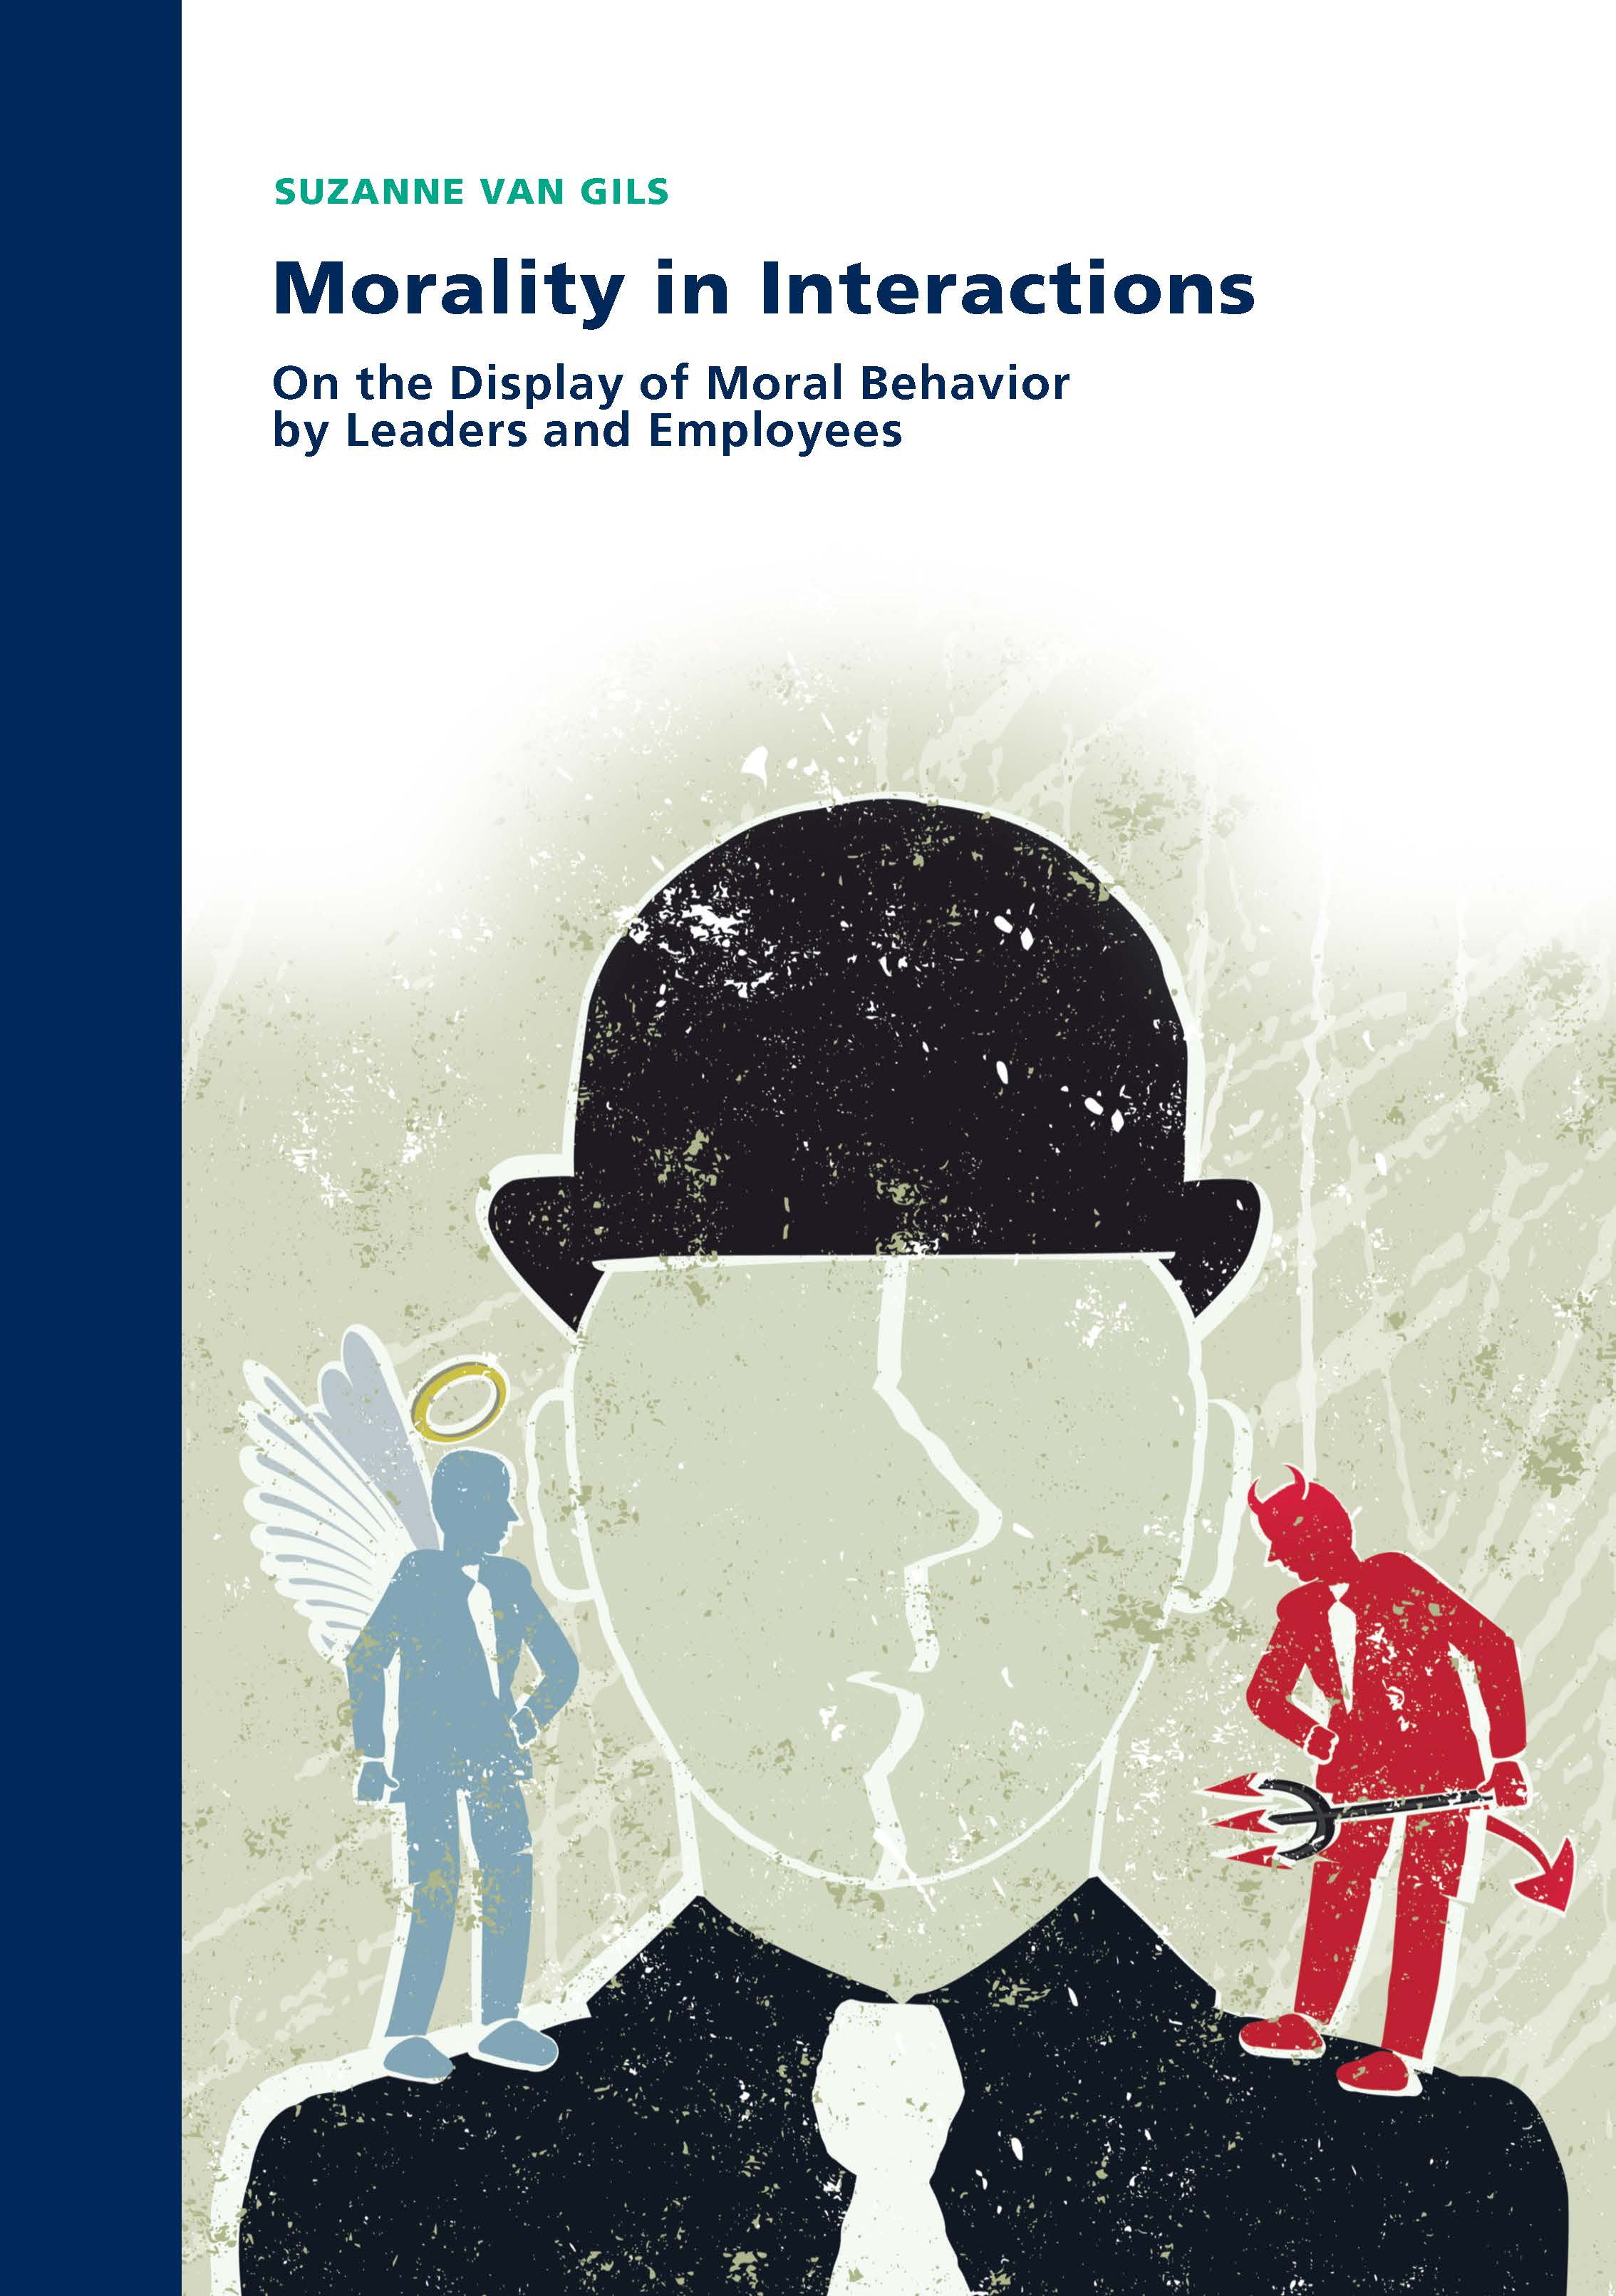 Morality in Interactions: On the Display of Moral Behavior by Leaders and Employees